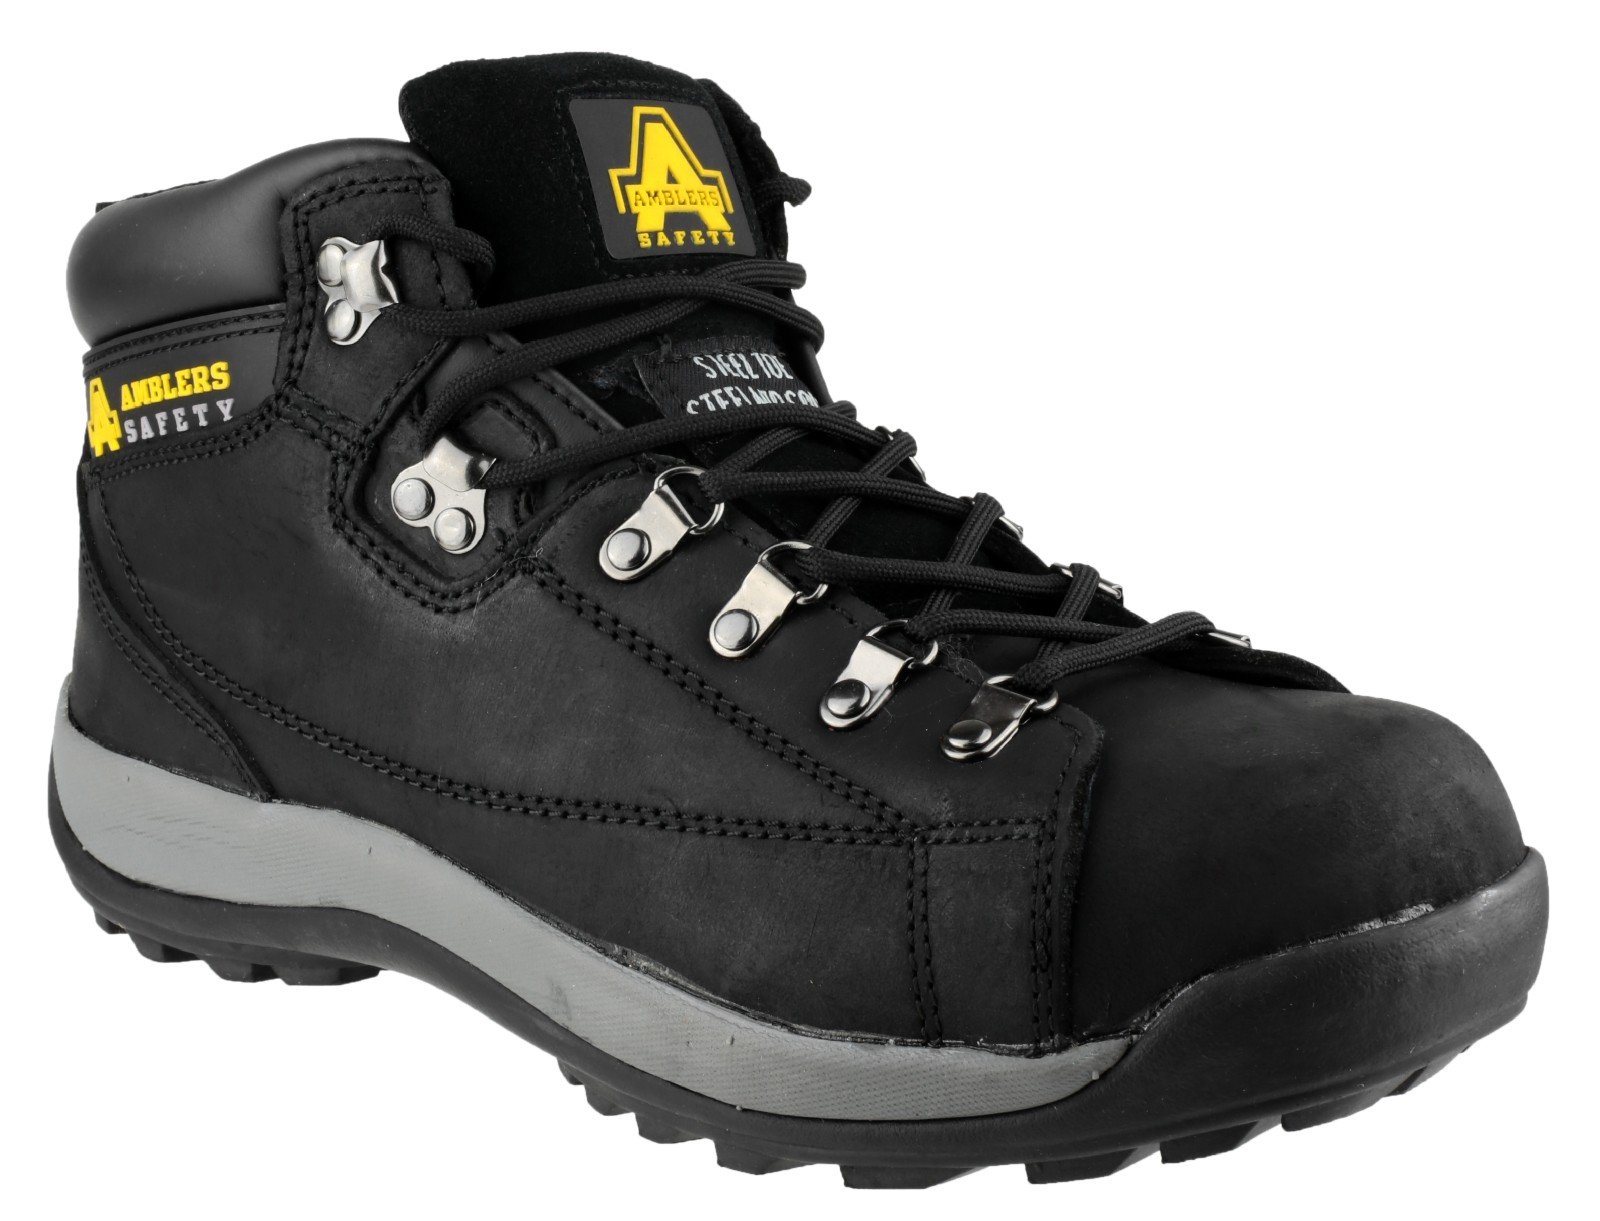 Amblers Steel Lace-Up Textile Lined Womens Boots - Black - Size 5